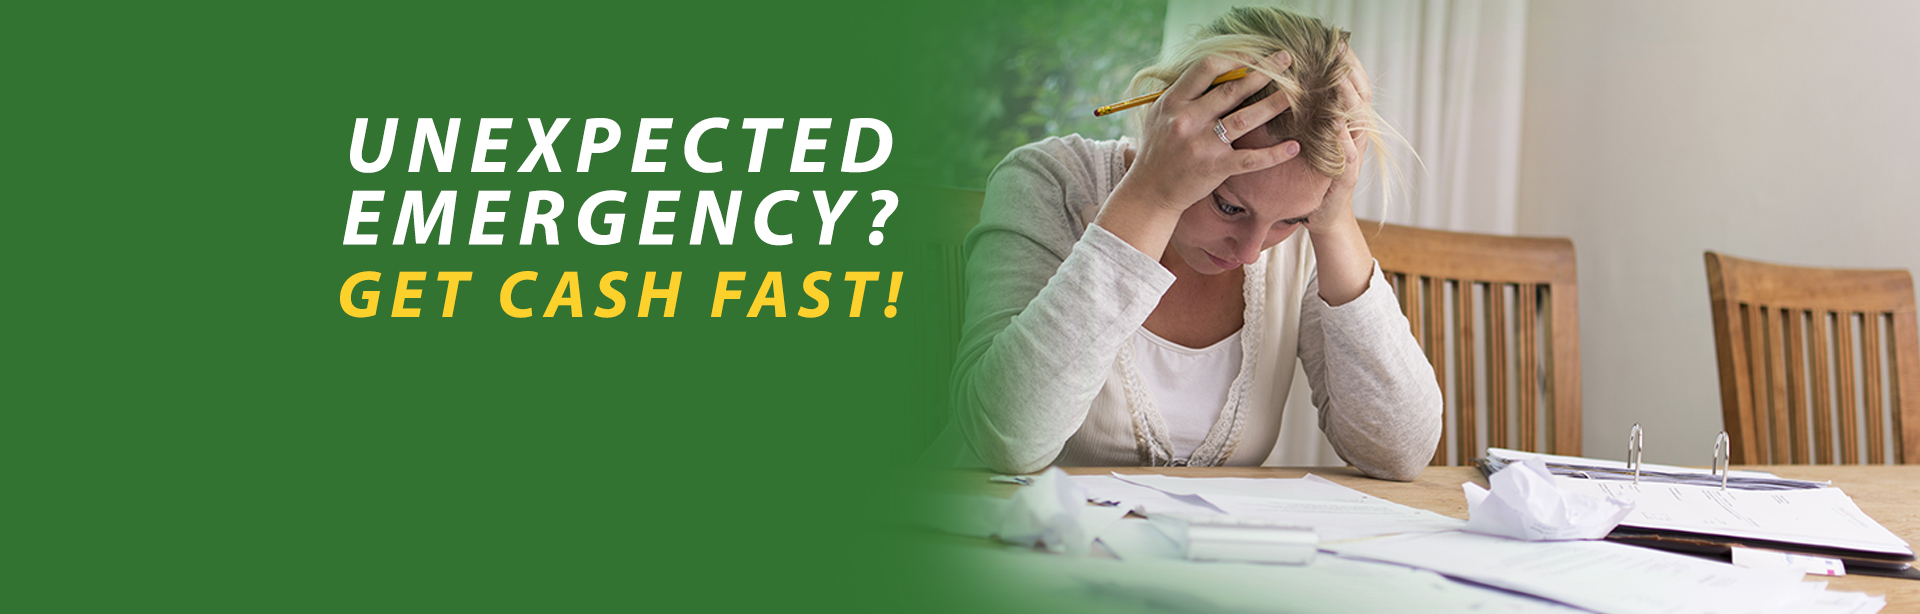 Cash Loan Fast Emergency